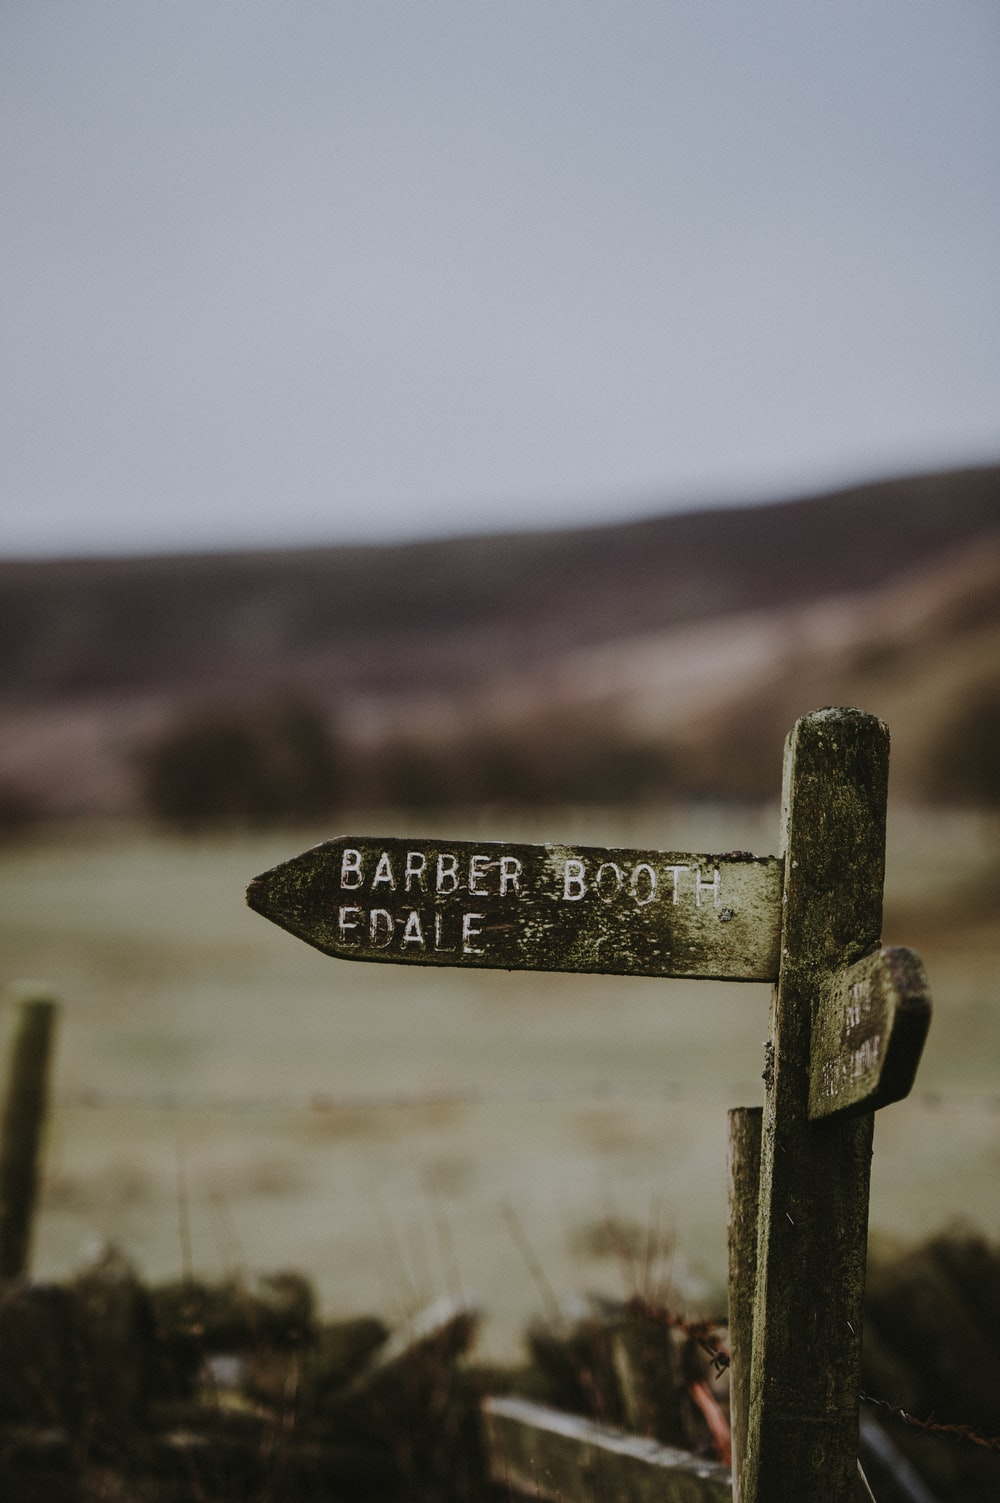 macro shot of black wooden Barber Booth Edale signage